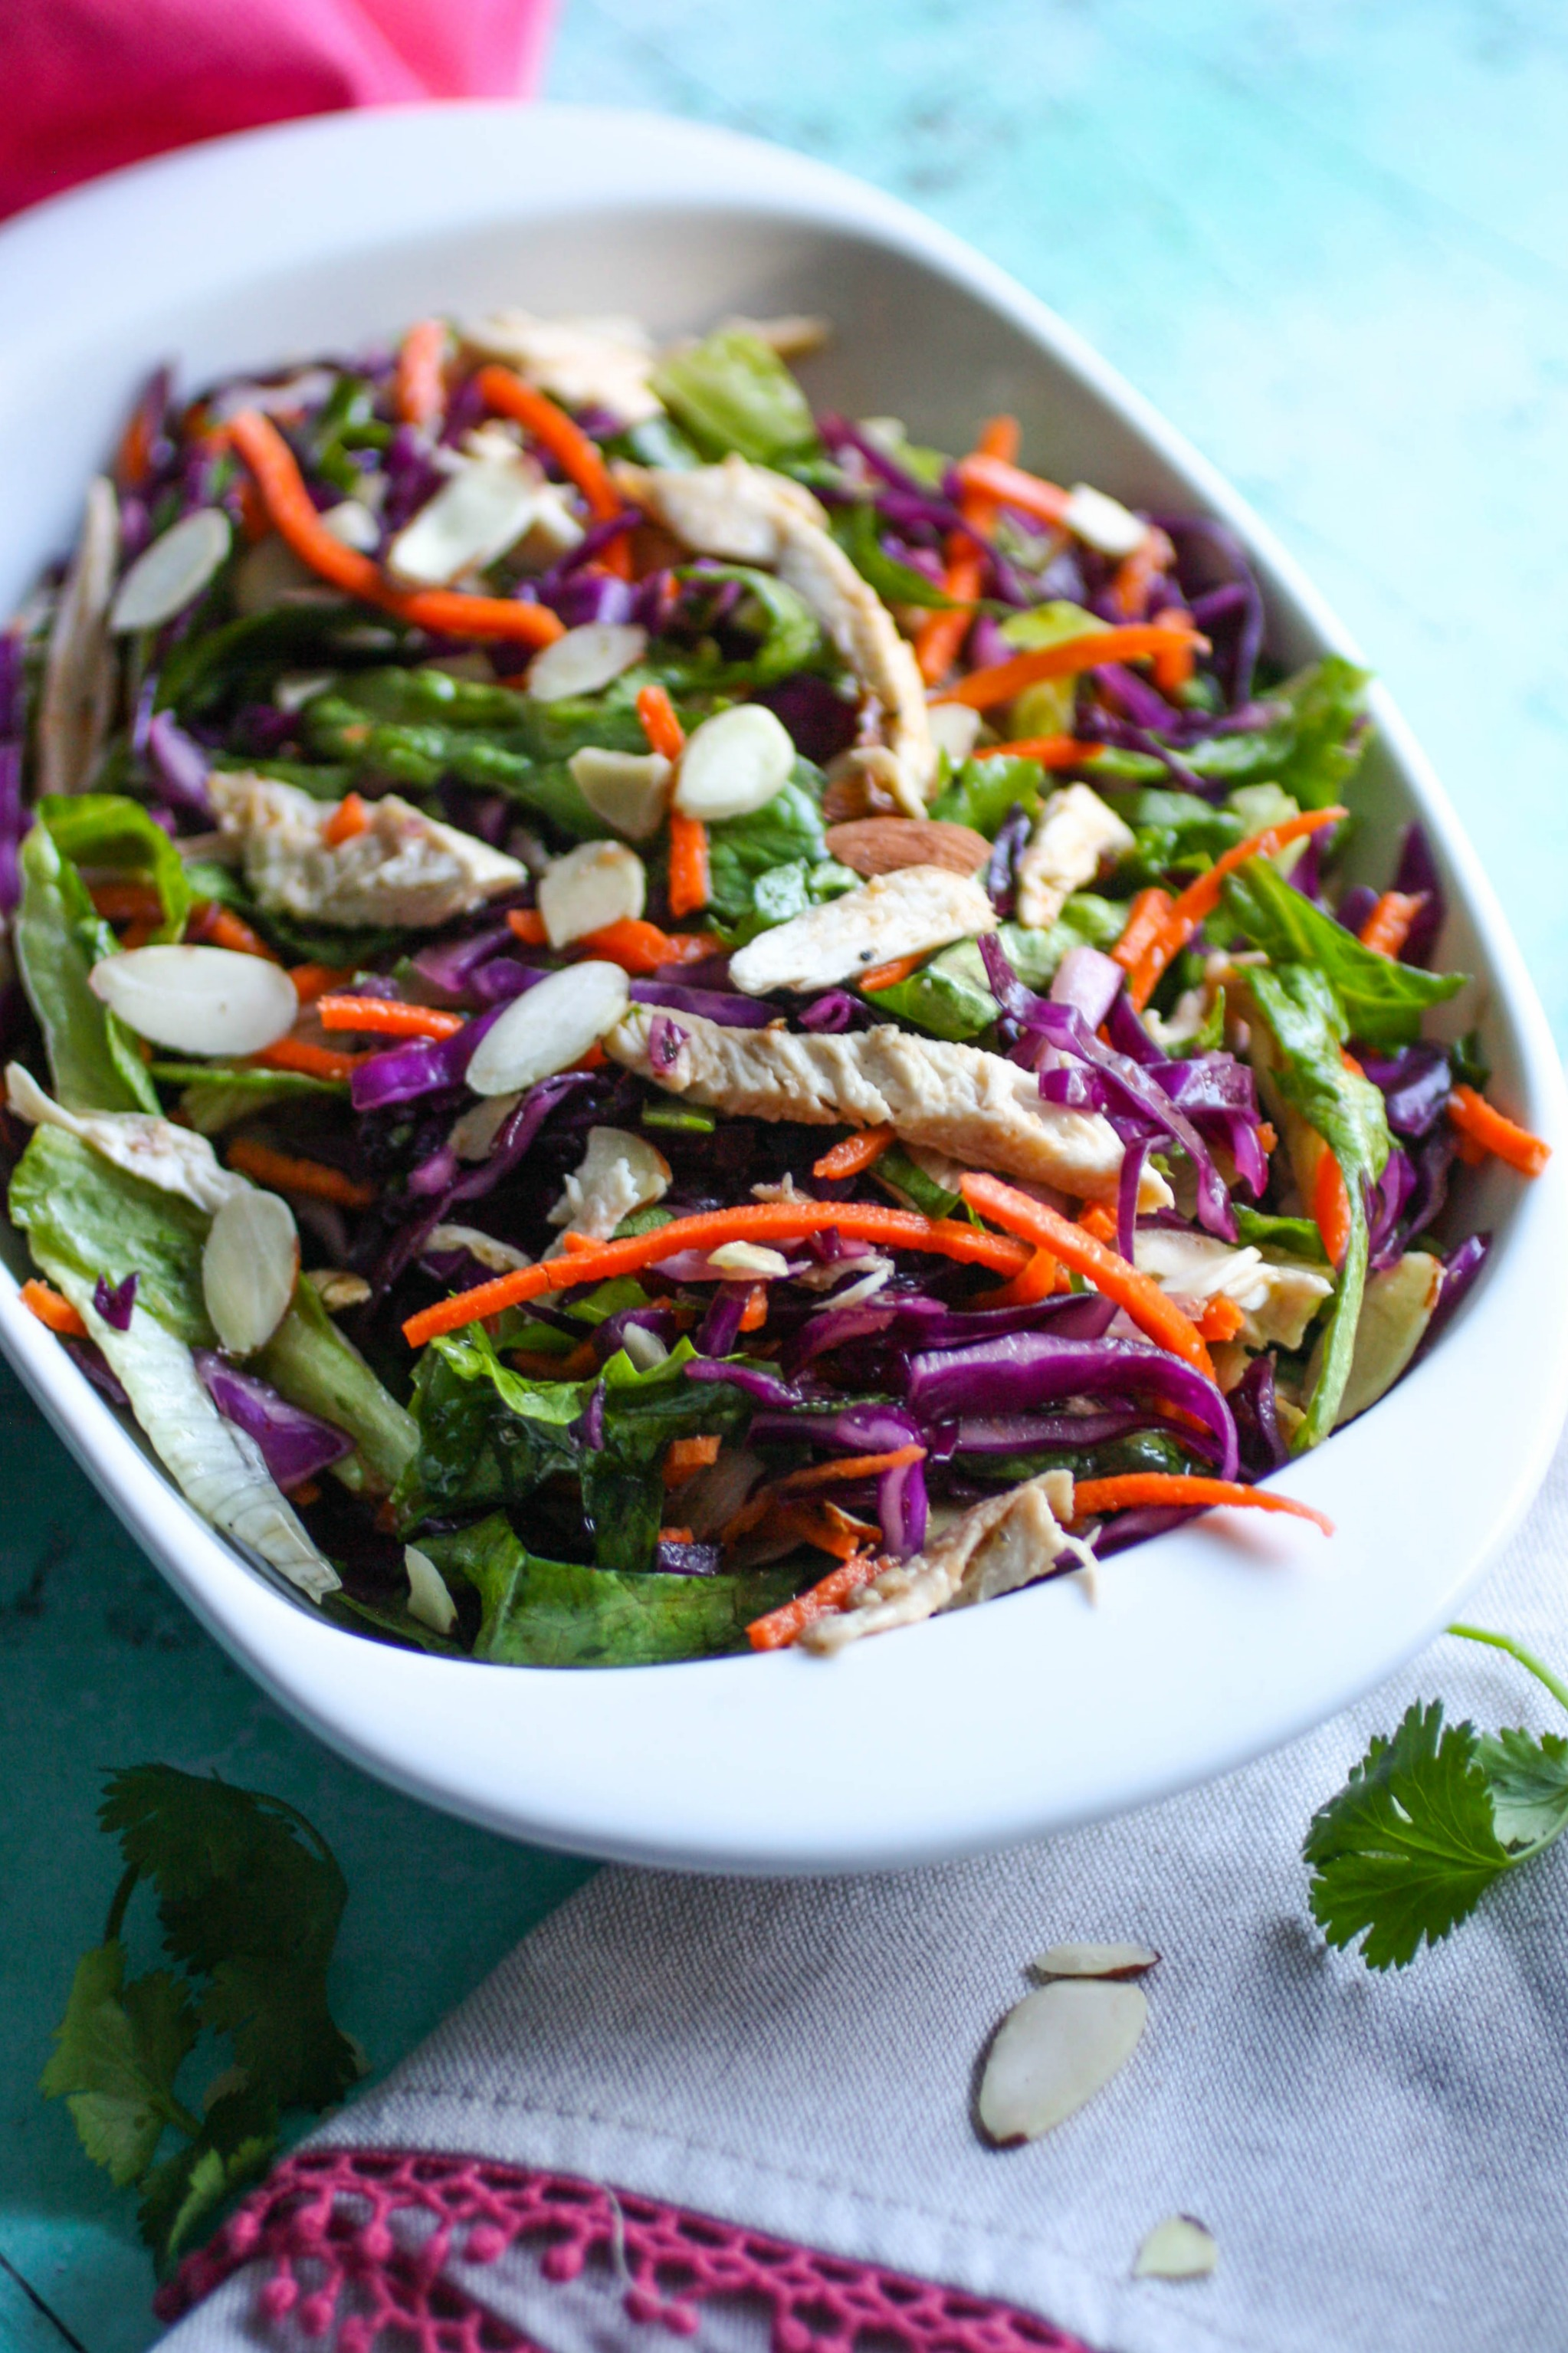 Crunchy Cabbage & Chicken Salad with Sesame Dressing is a lovely salad to serve with any meal. You'll love the crunch and color in this vibrant cabbage salad.